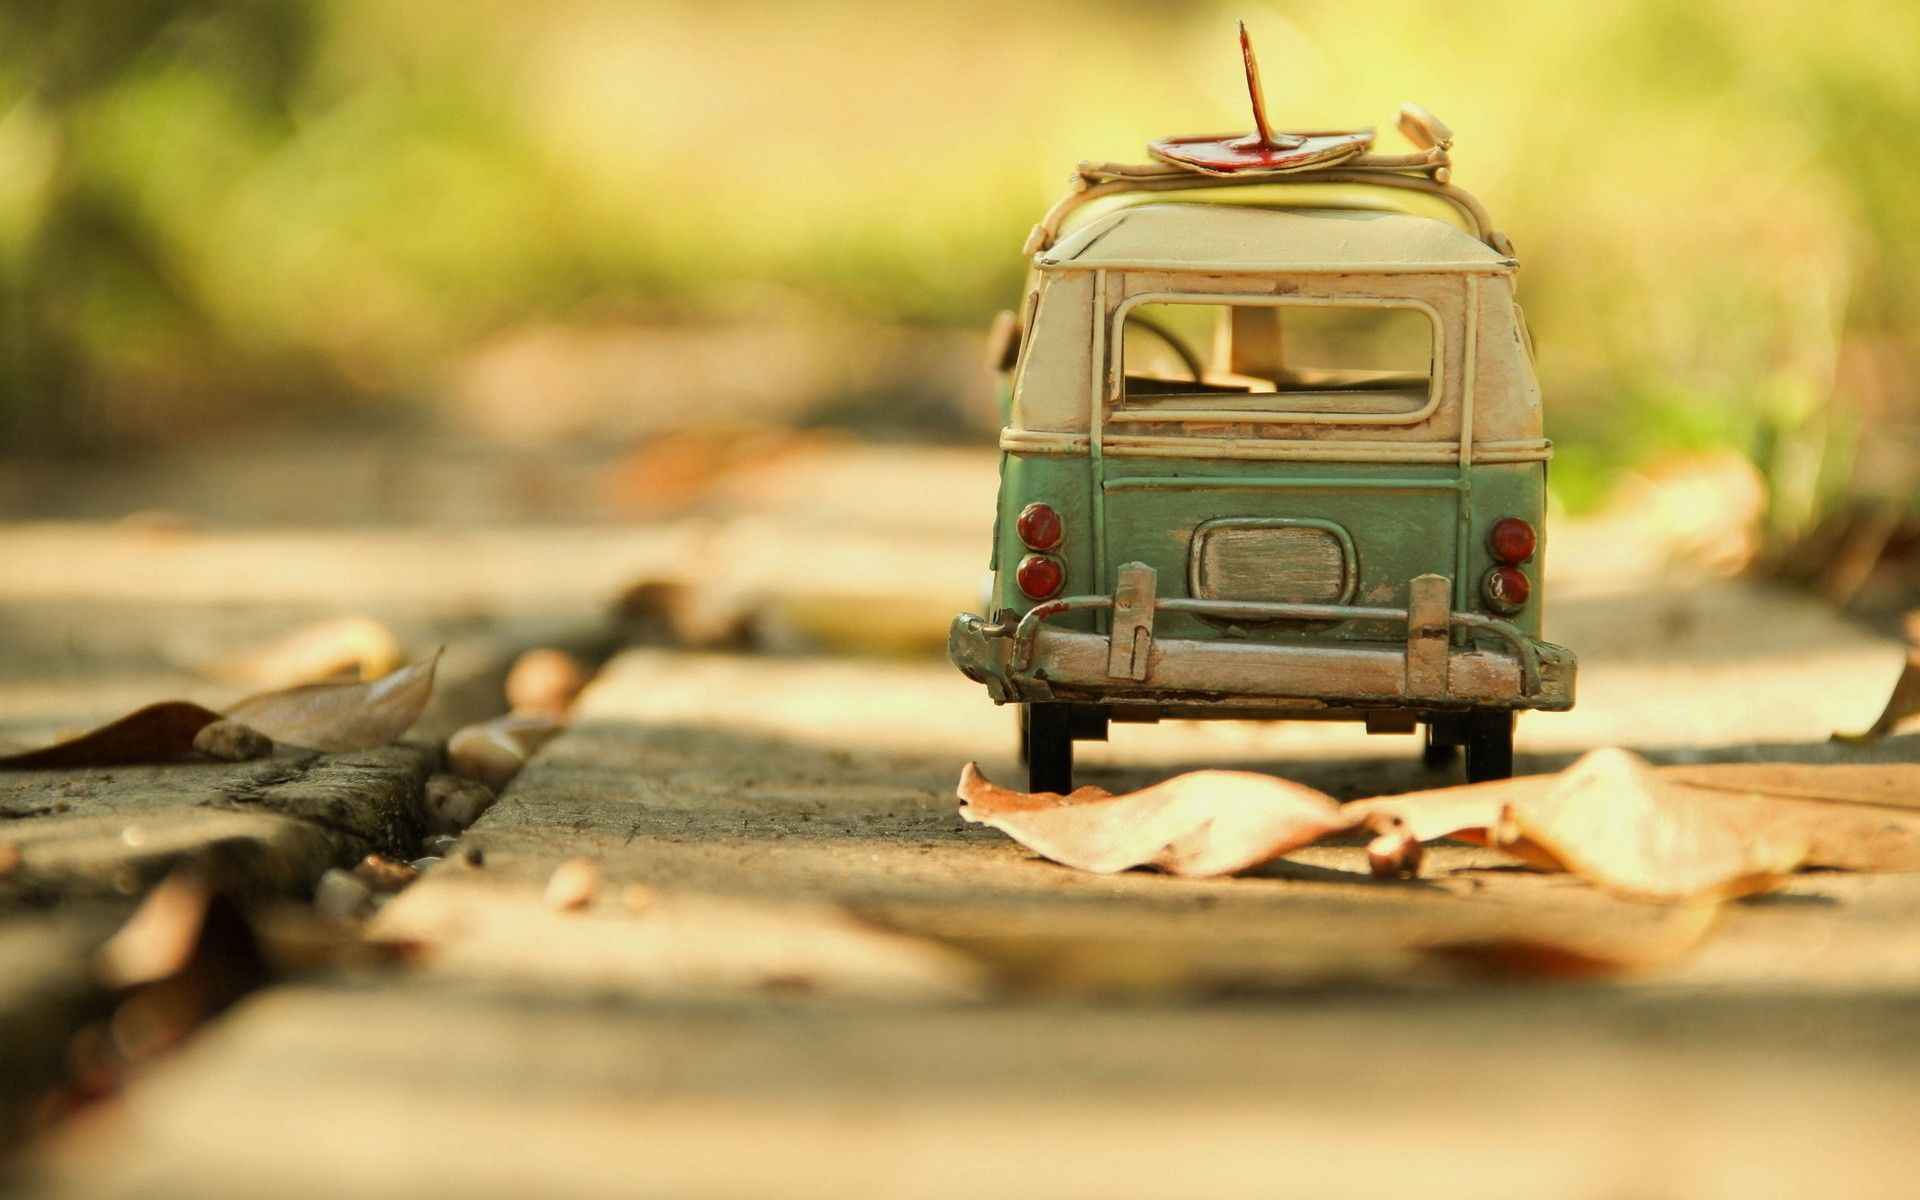 Old Toy Car On The Road Cars And Other Vehicles Wallpapers Hd Wallpaper Download For Ipa Vintage Photography Wallpaper Computer Vintage Wallpapers Computer